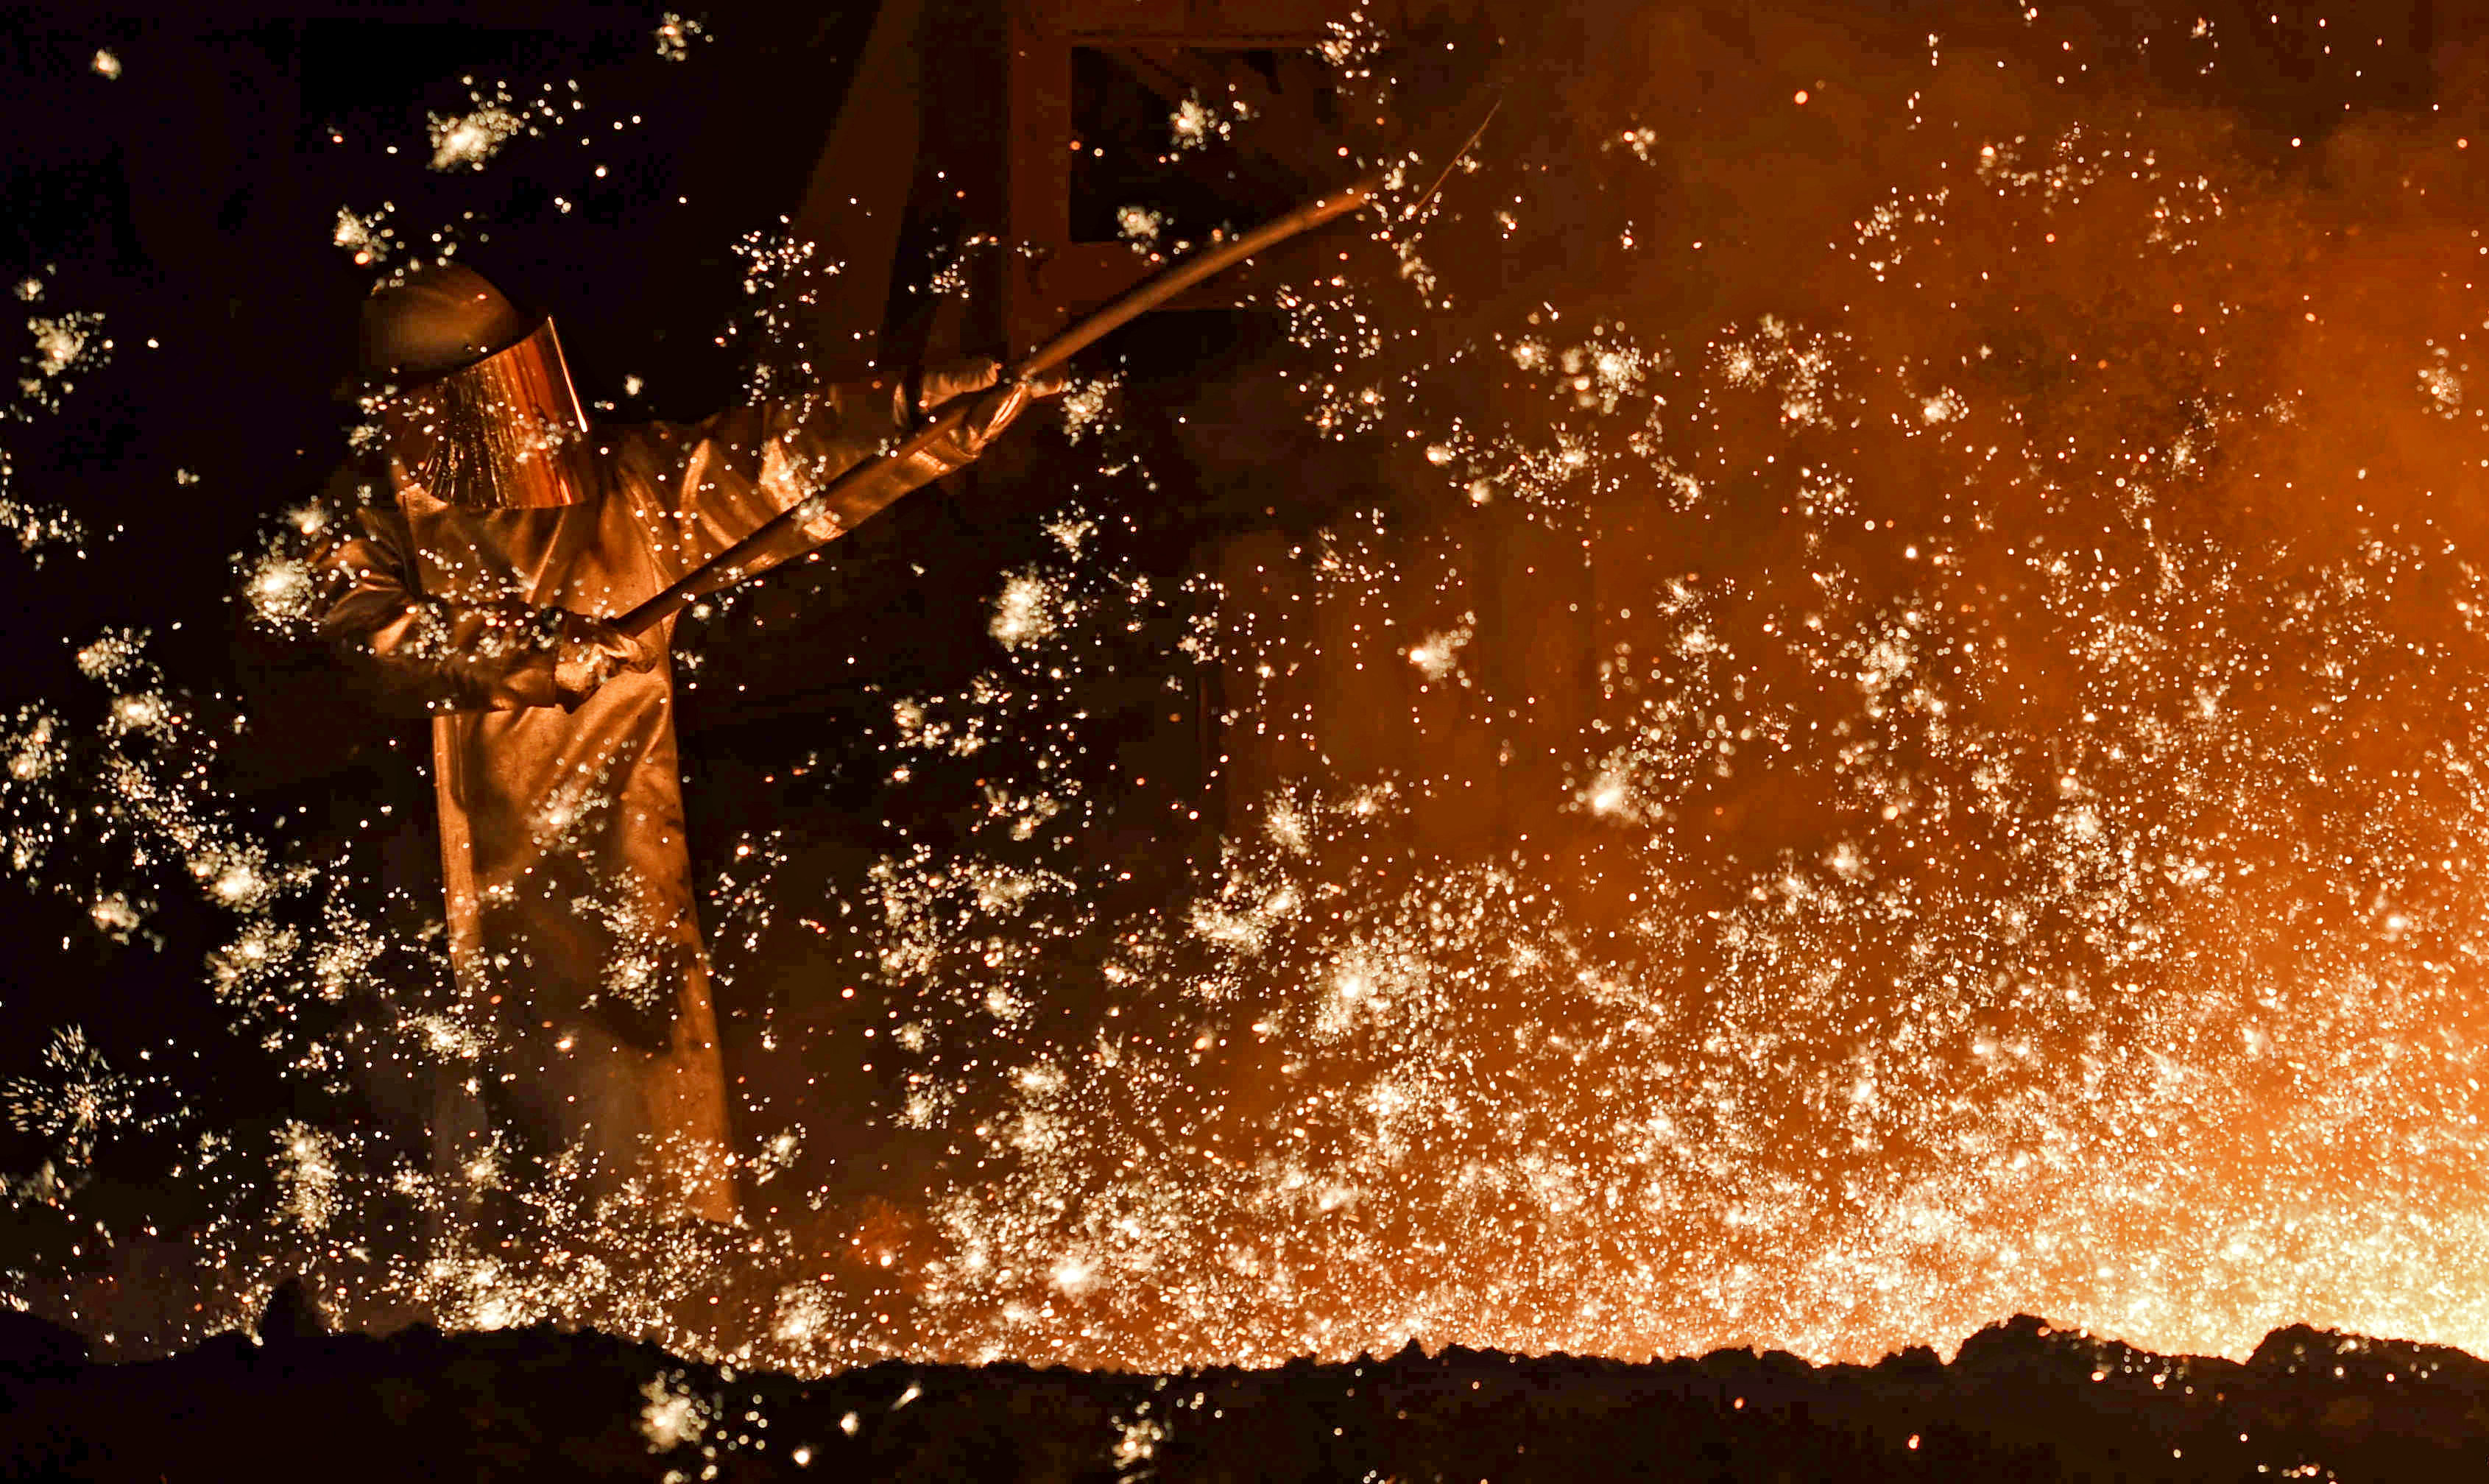 German industrial orders fall unexpectedly